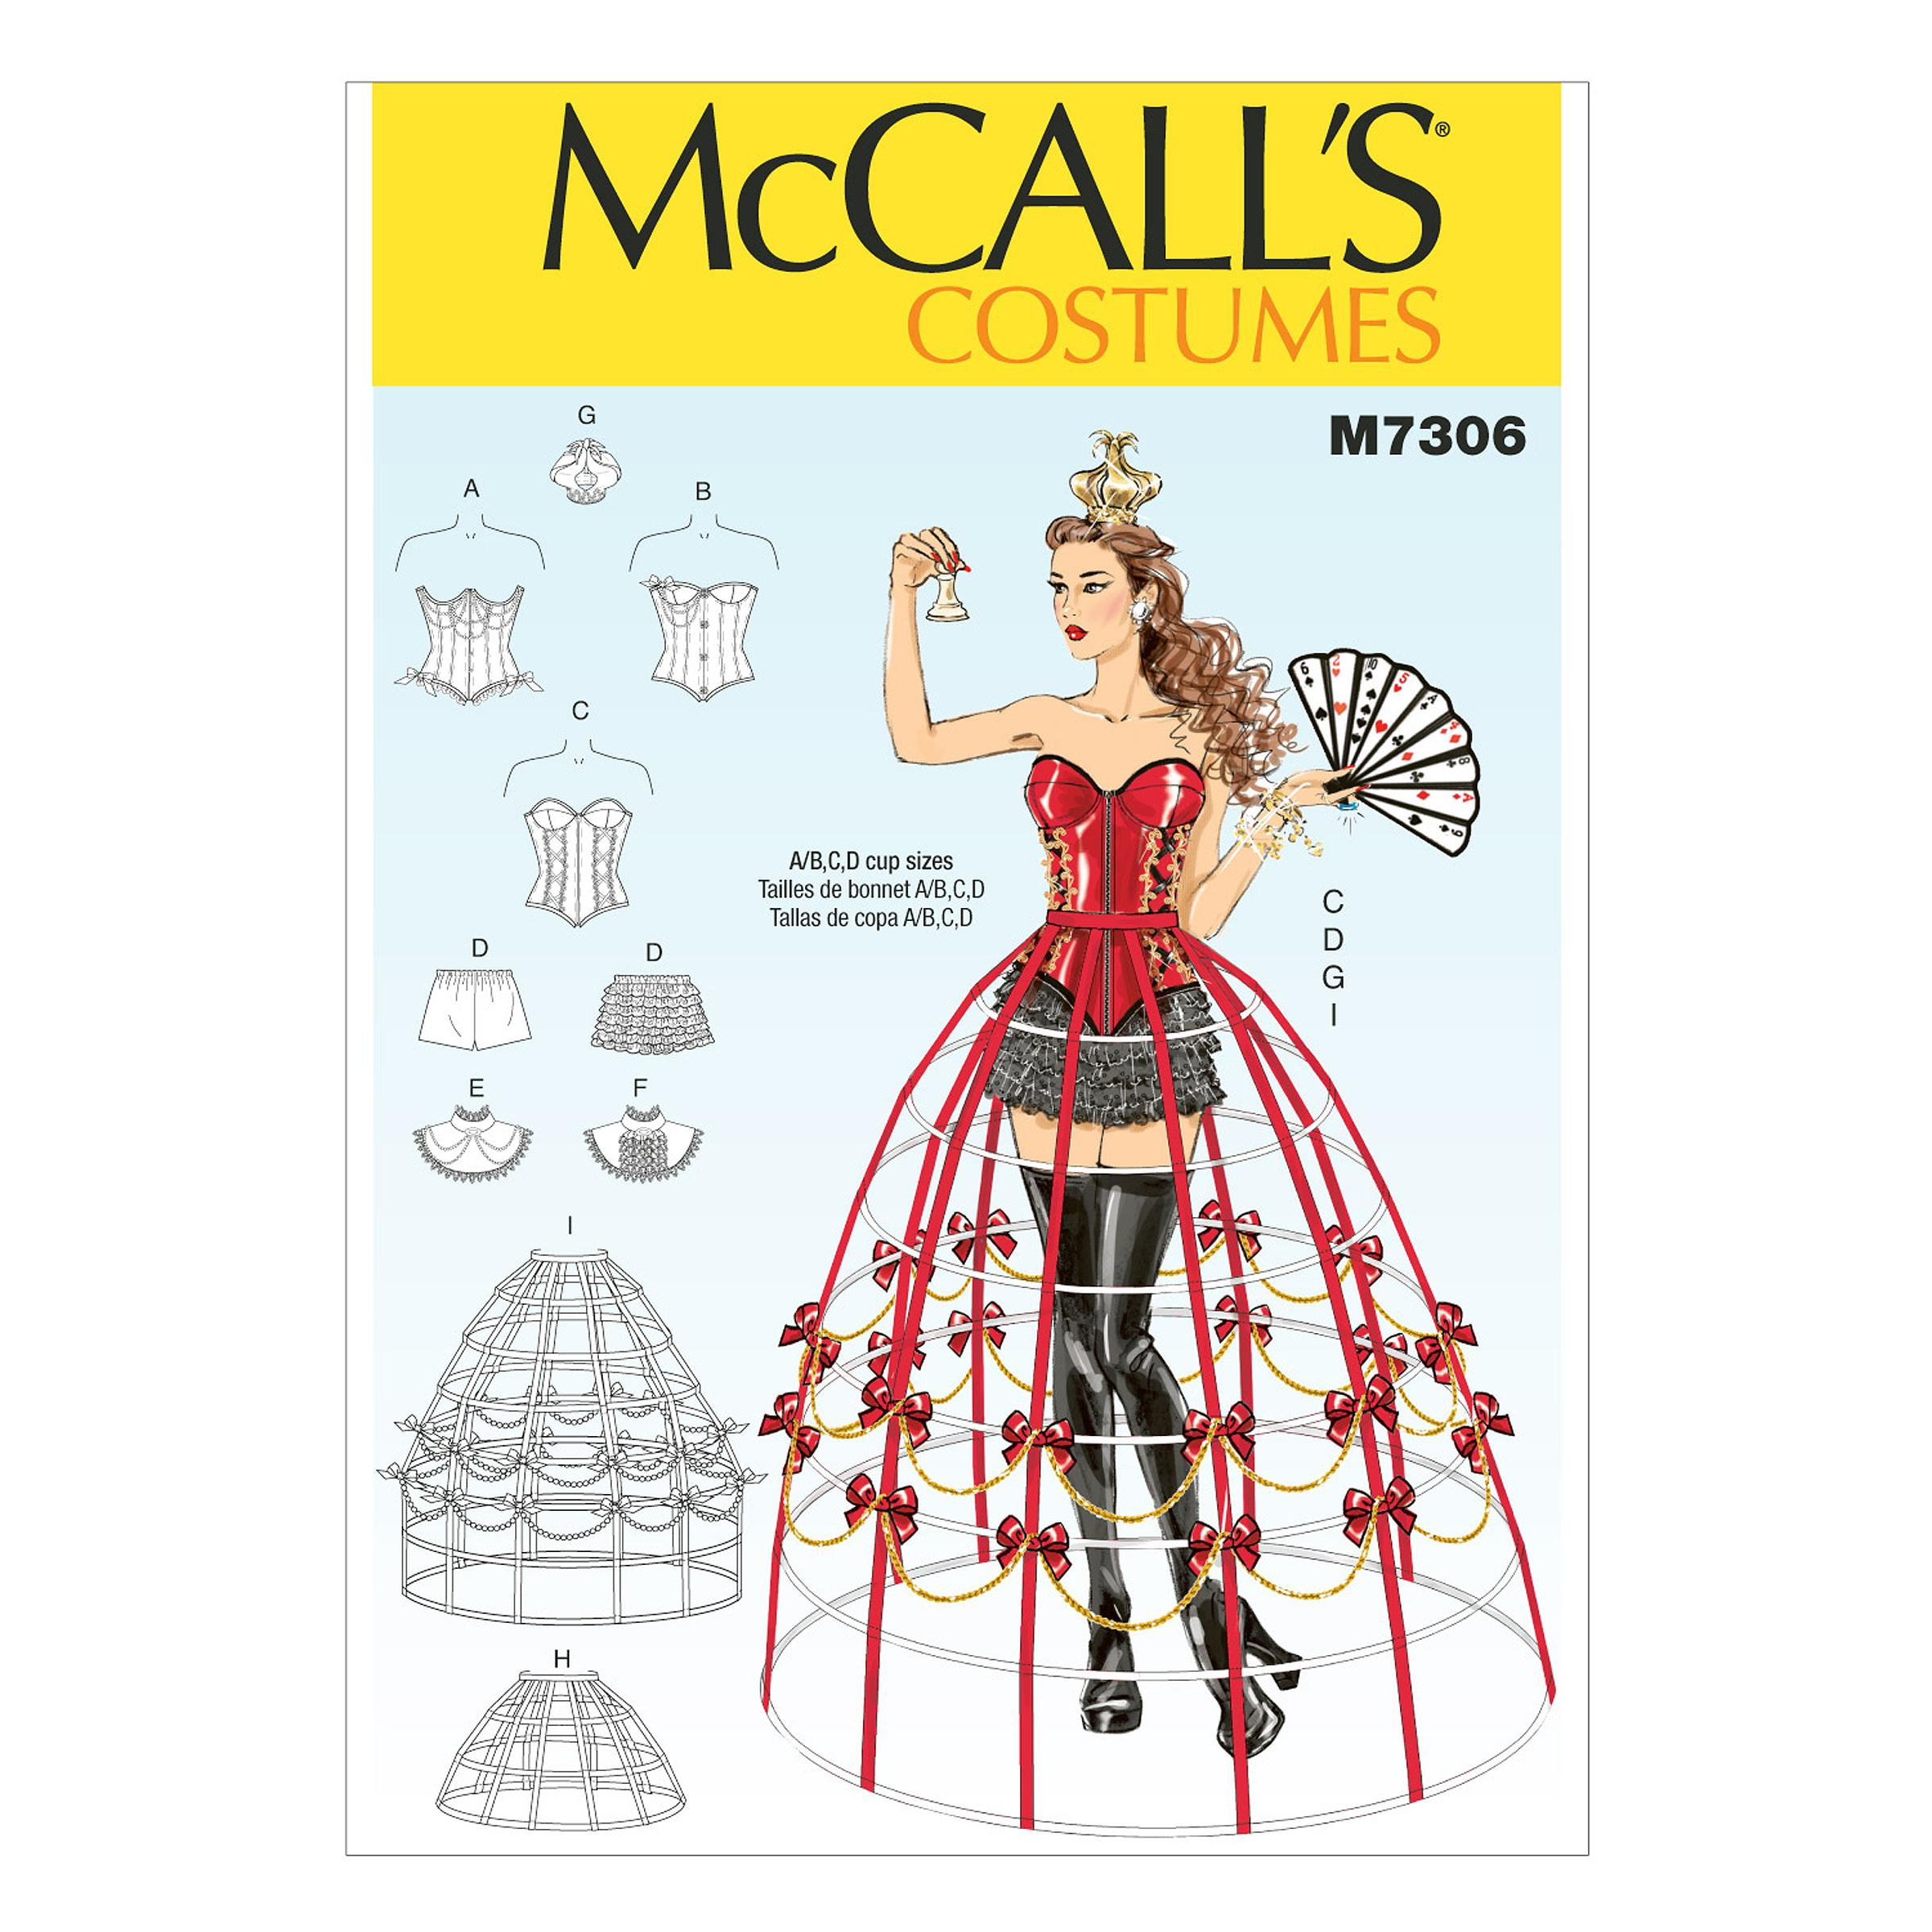 McCalls M7306 A/B, C & D Cup Sizes, Accessories, Corsets, Costumes, Skirts, Bustles & Petticoats